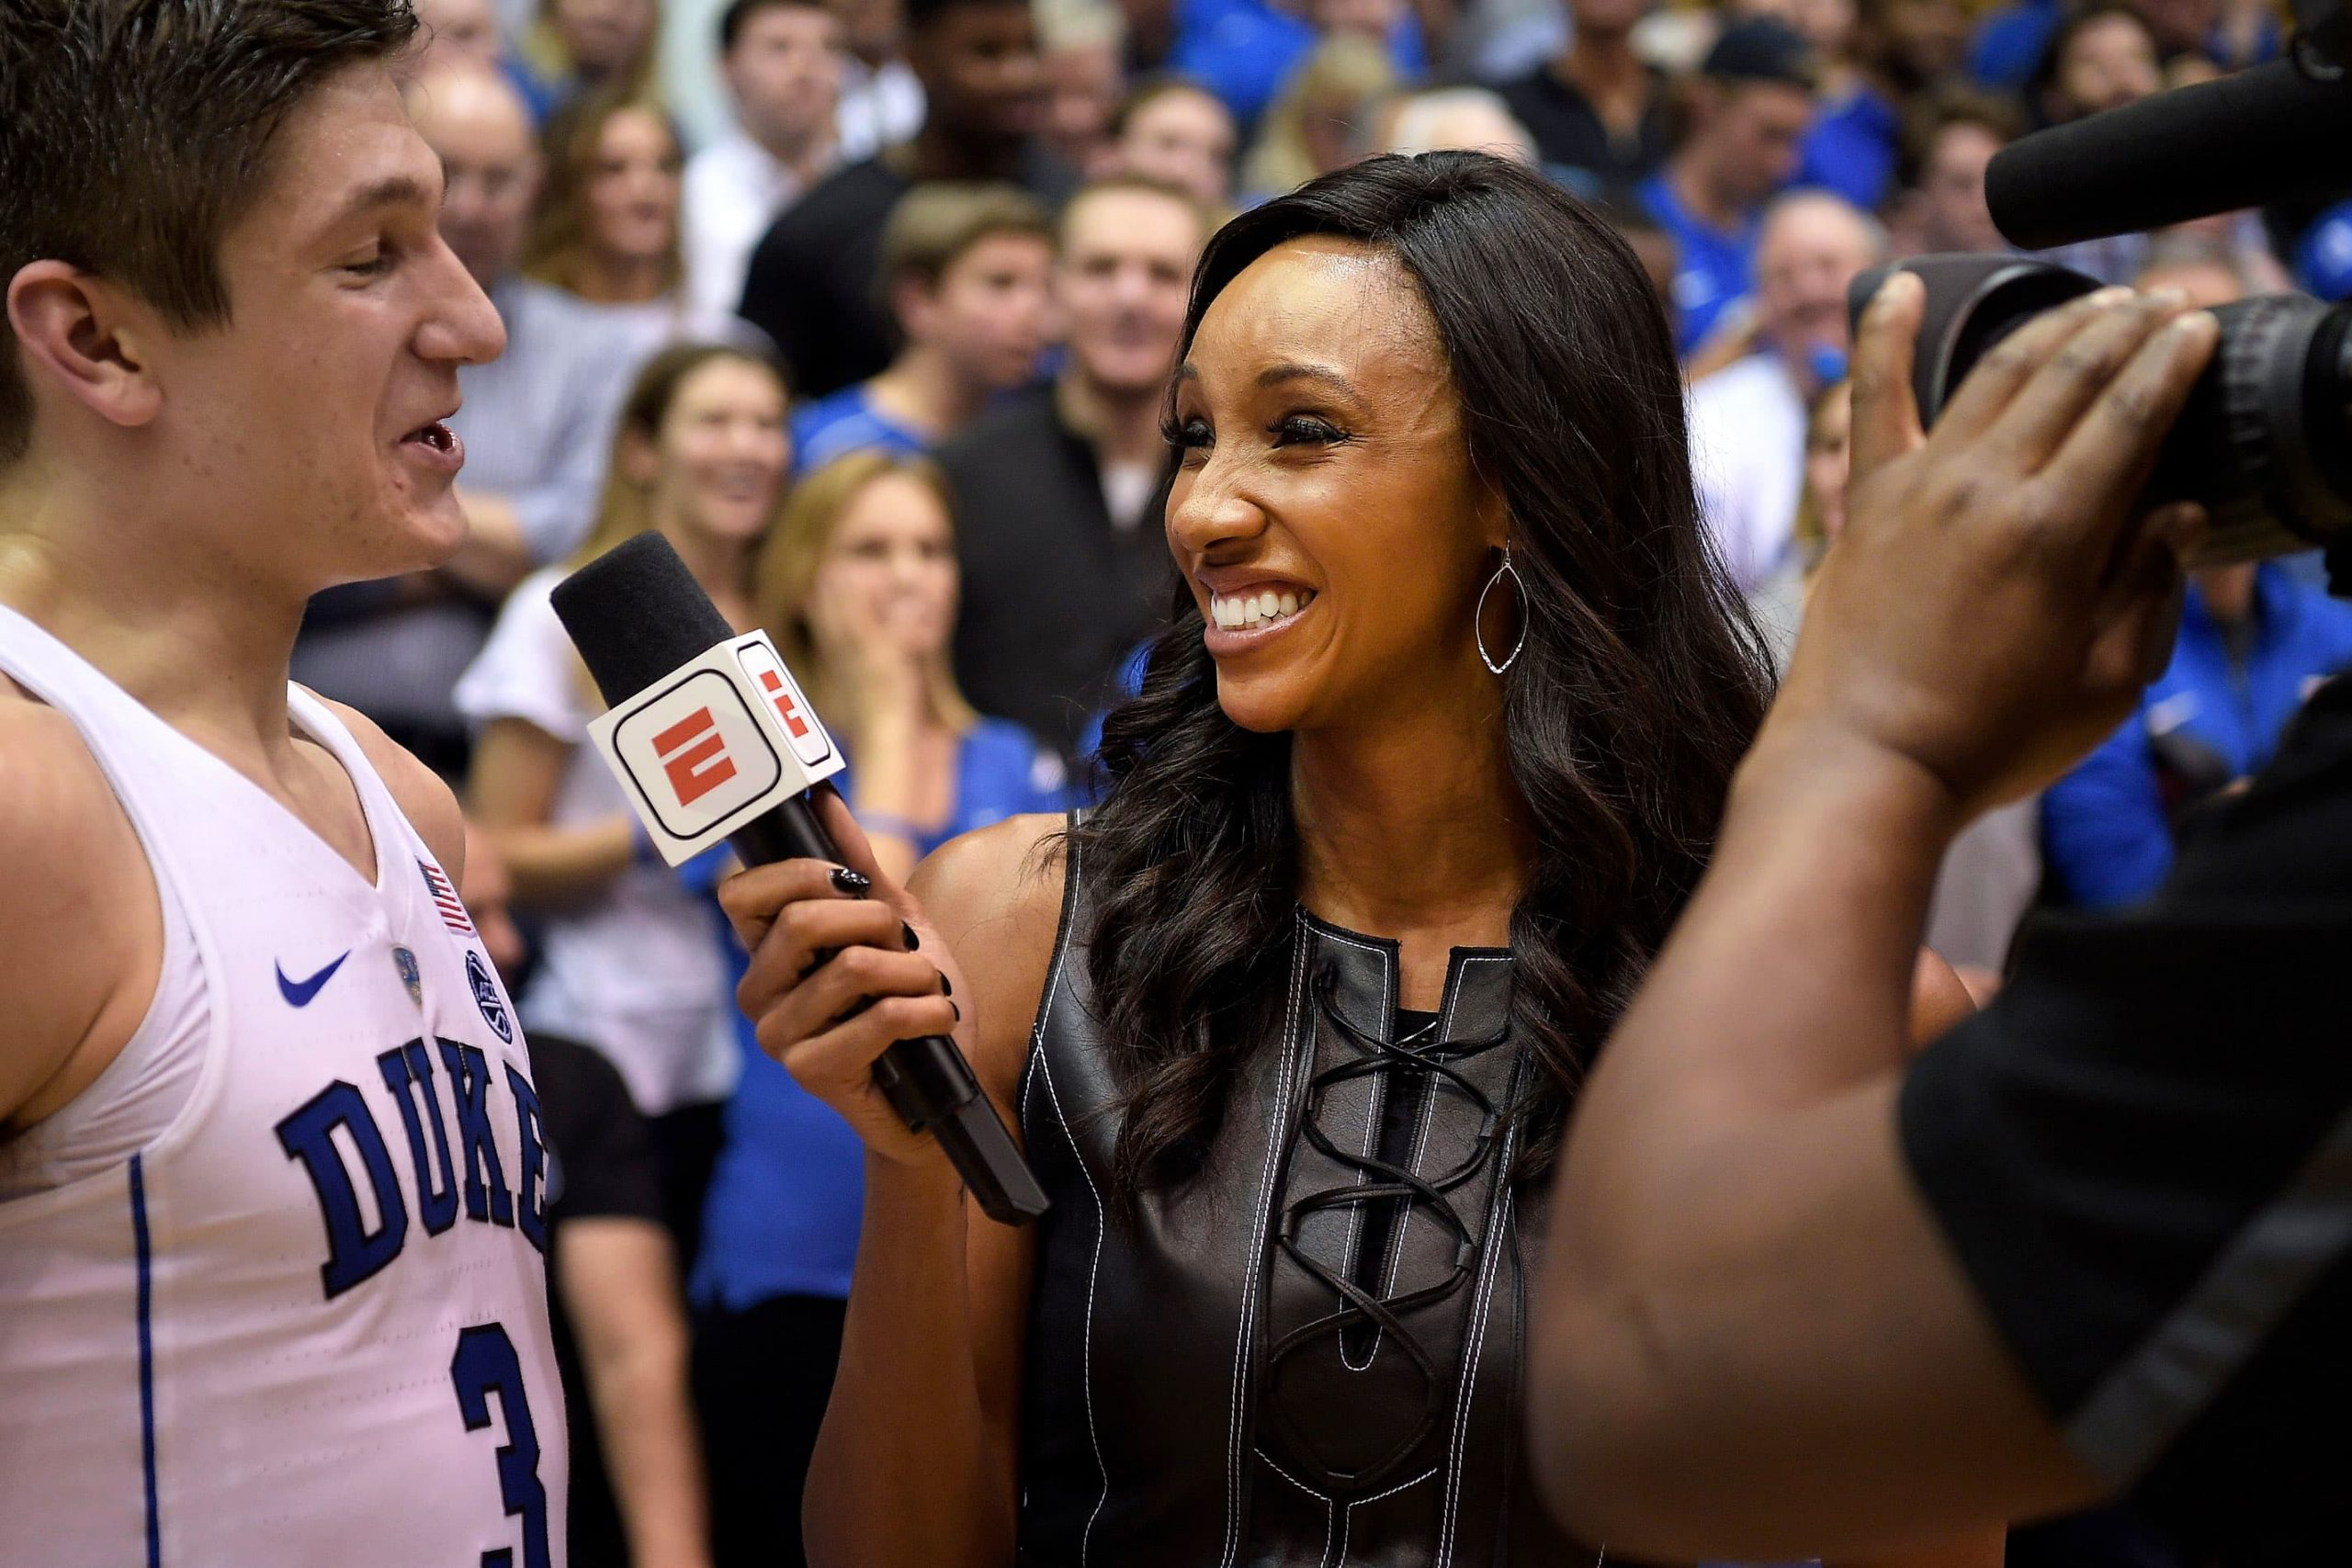 Maria Taylor leaves ESPN after contract ends